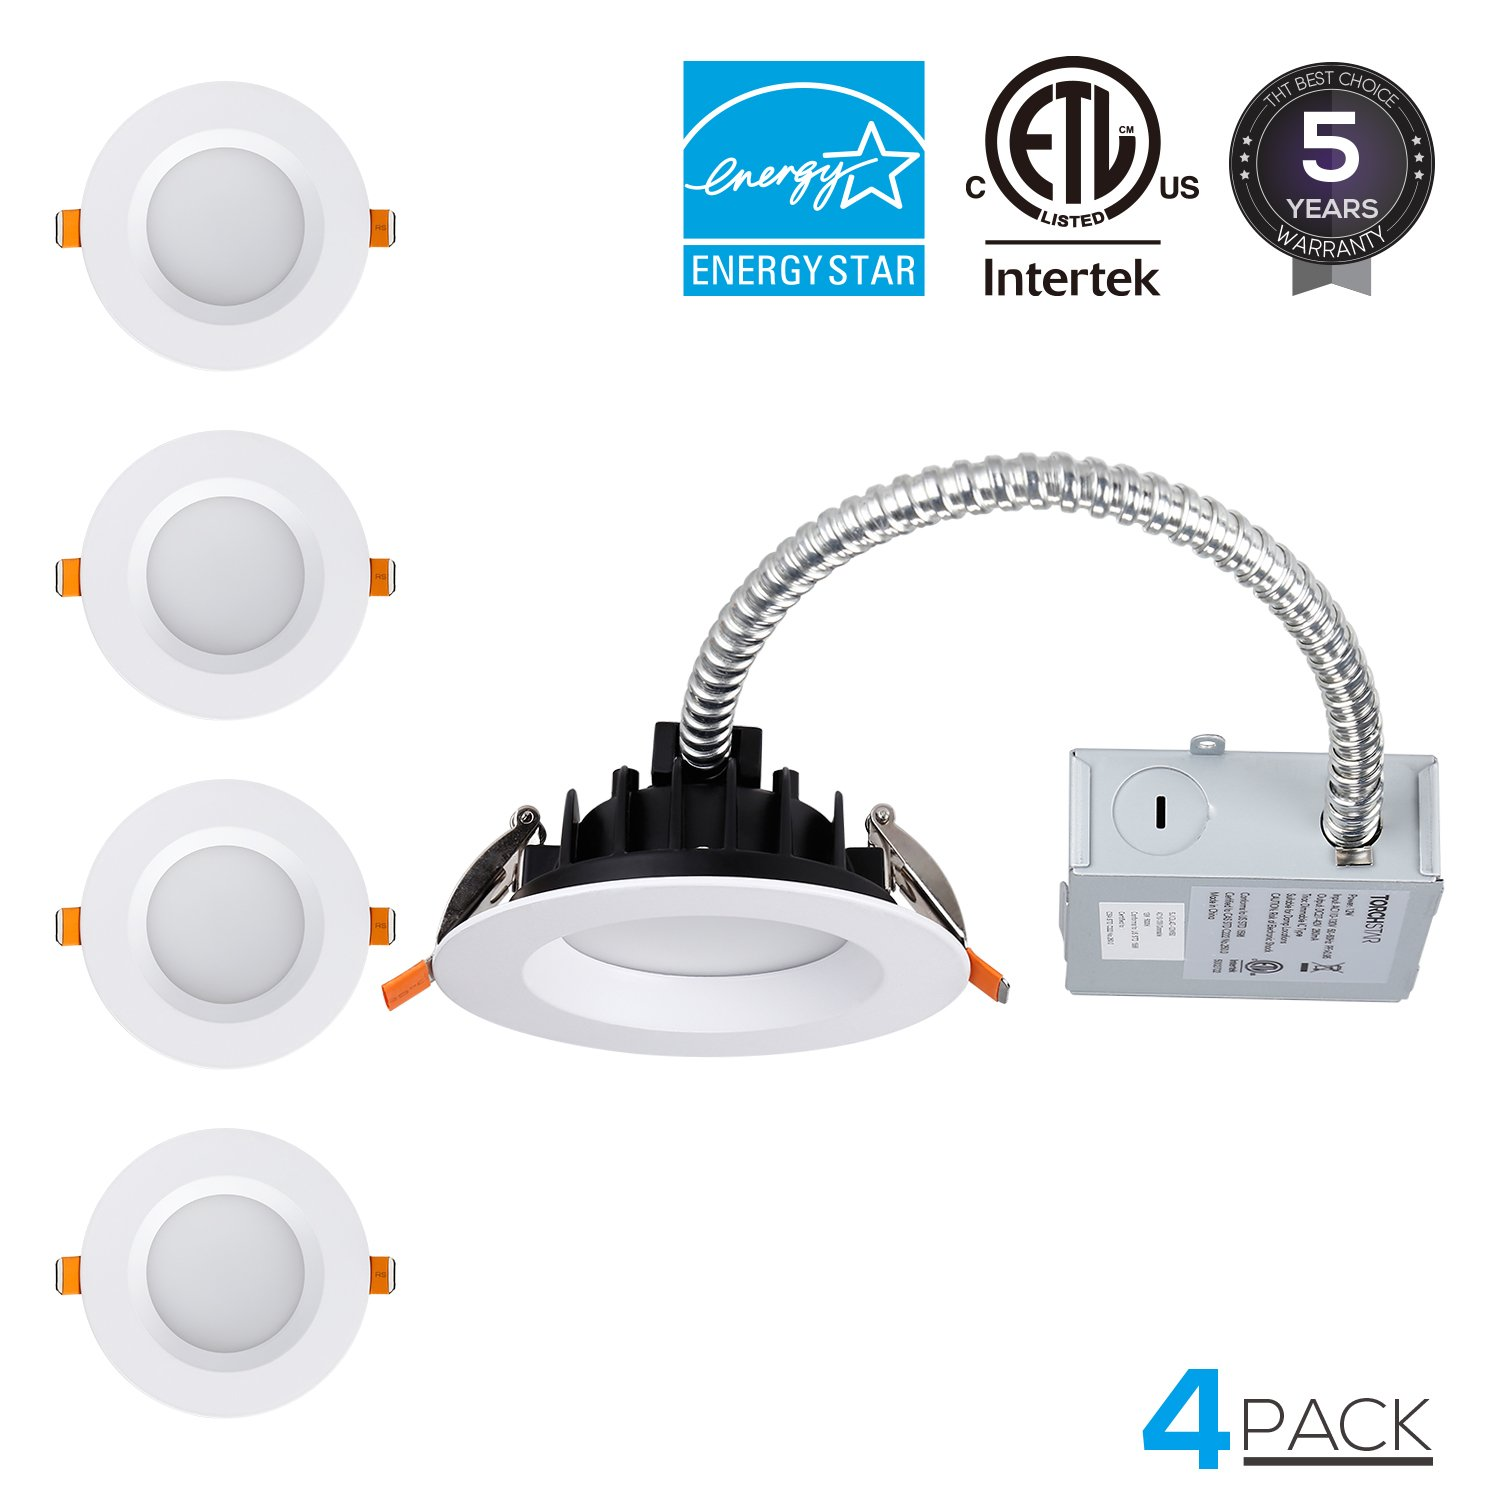 TORCHSTAR 4-inch Commercial LED Recessed Ceiling Light with Junction Box, IC Rated Can Killer, Dimmable Airtight Downlight, 12W (90W Equiv.), ETL & Energy Star Certified, 3000K Warm White, Pack of 4